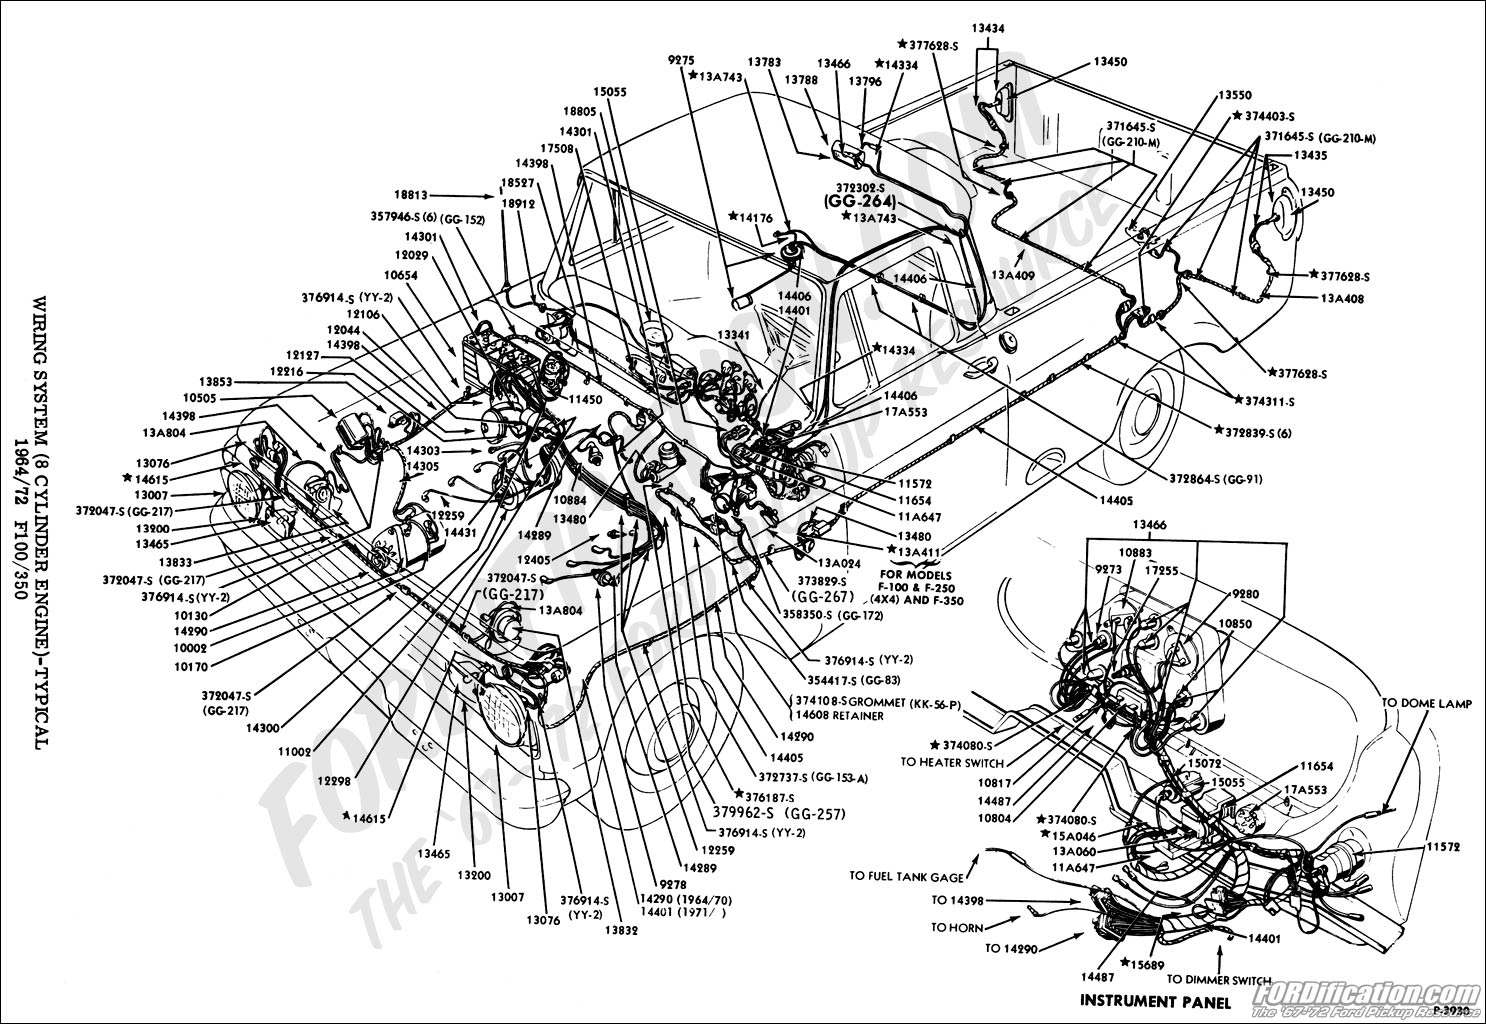 Schematics_i on 1963 Ford Fairlane Wiring Diagram